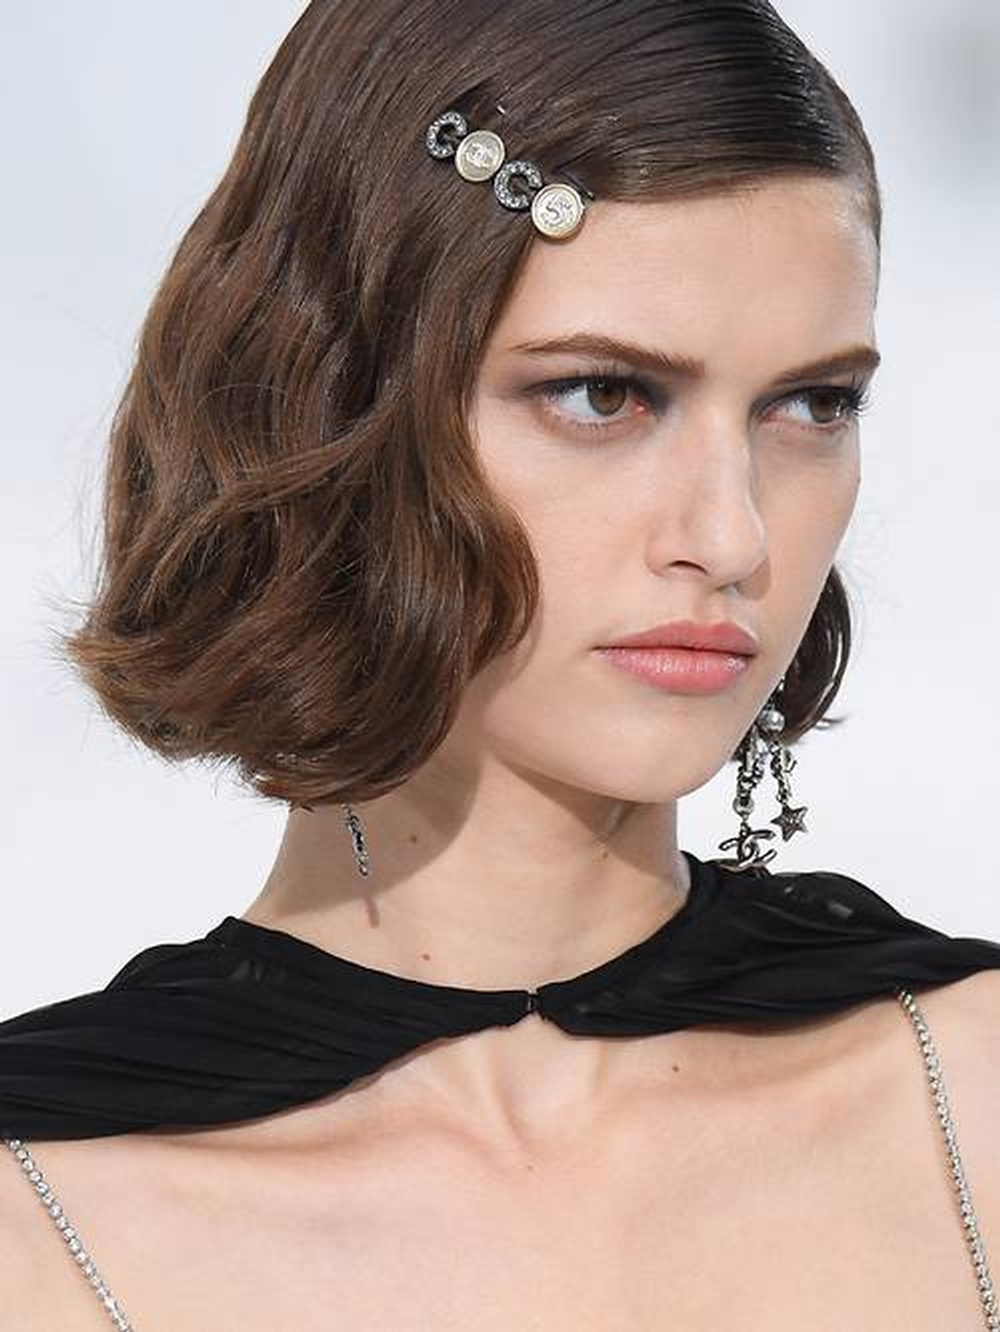 spring-summer-2020-accessory-trends-289536-1602236860285-image.500x0c.jpg